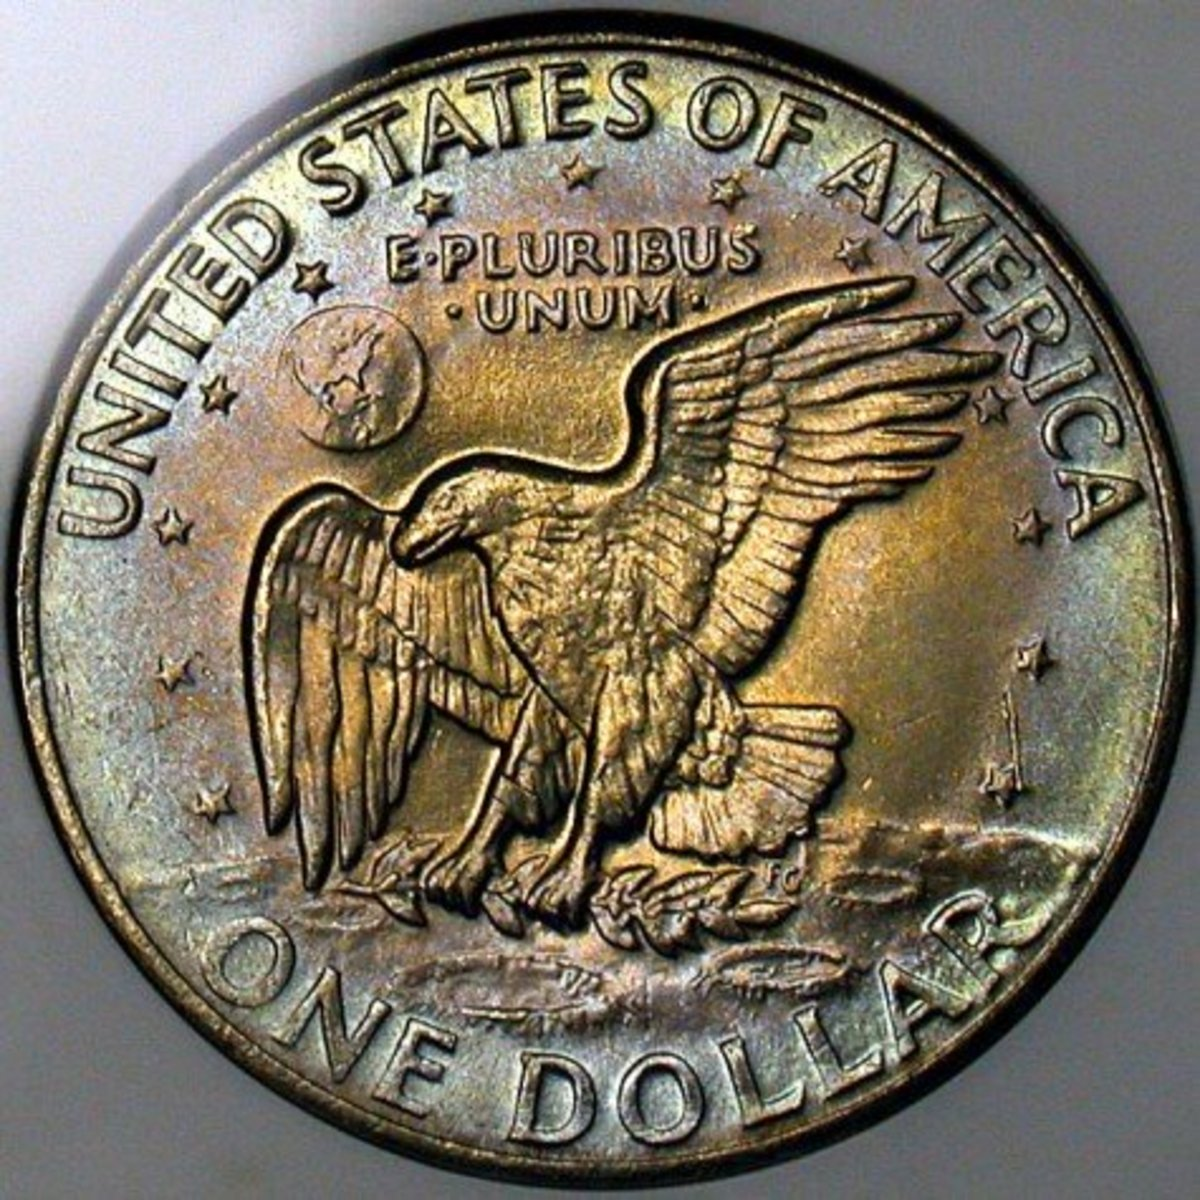 1972 Eisenhower Dollar Variety 3. Photo Courtesy Coinpage.com